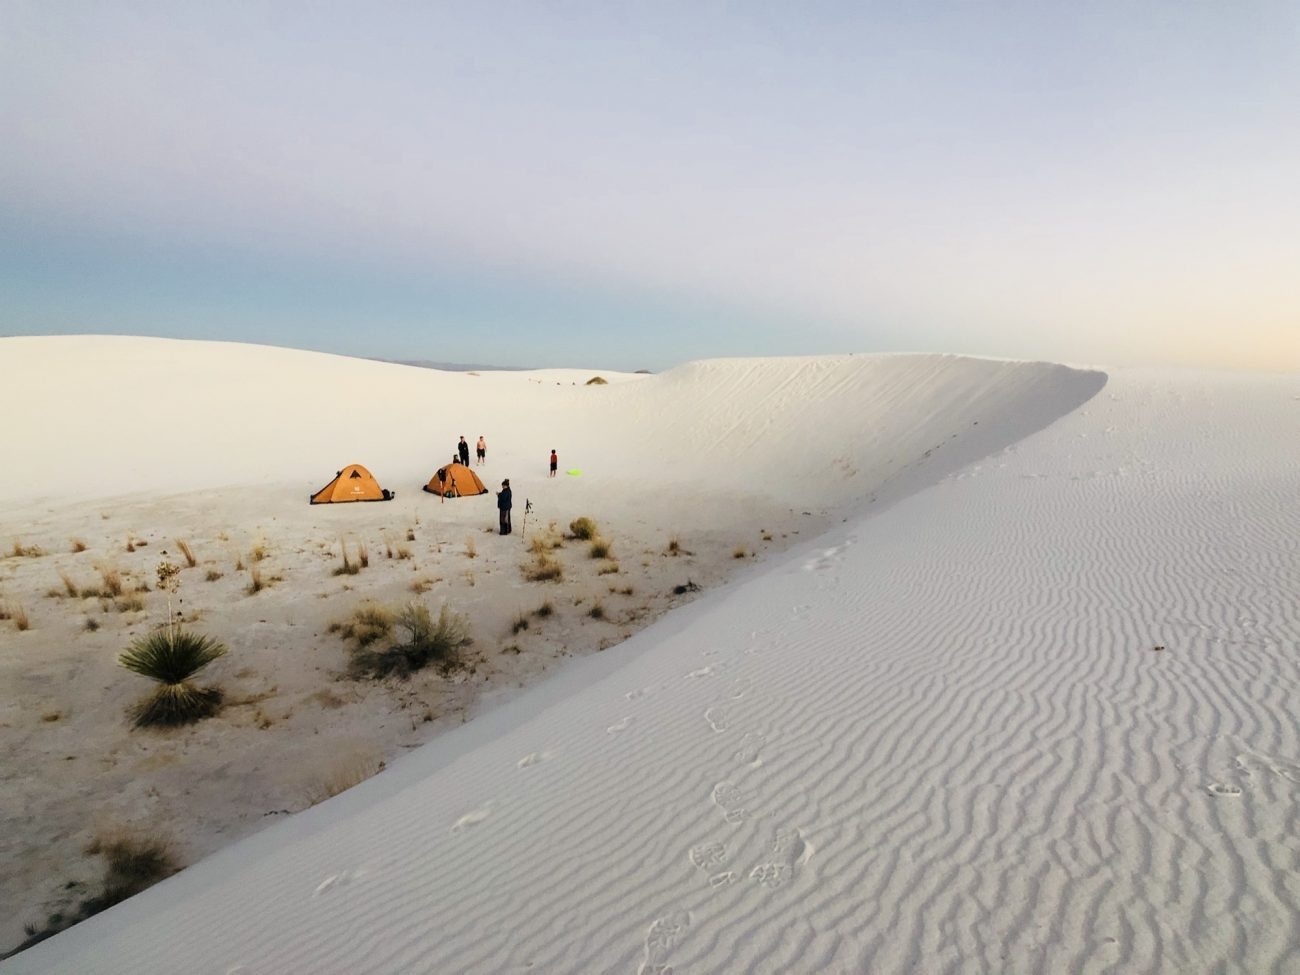 Camp at White Sands